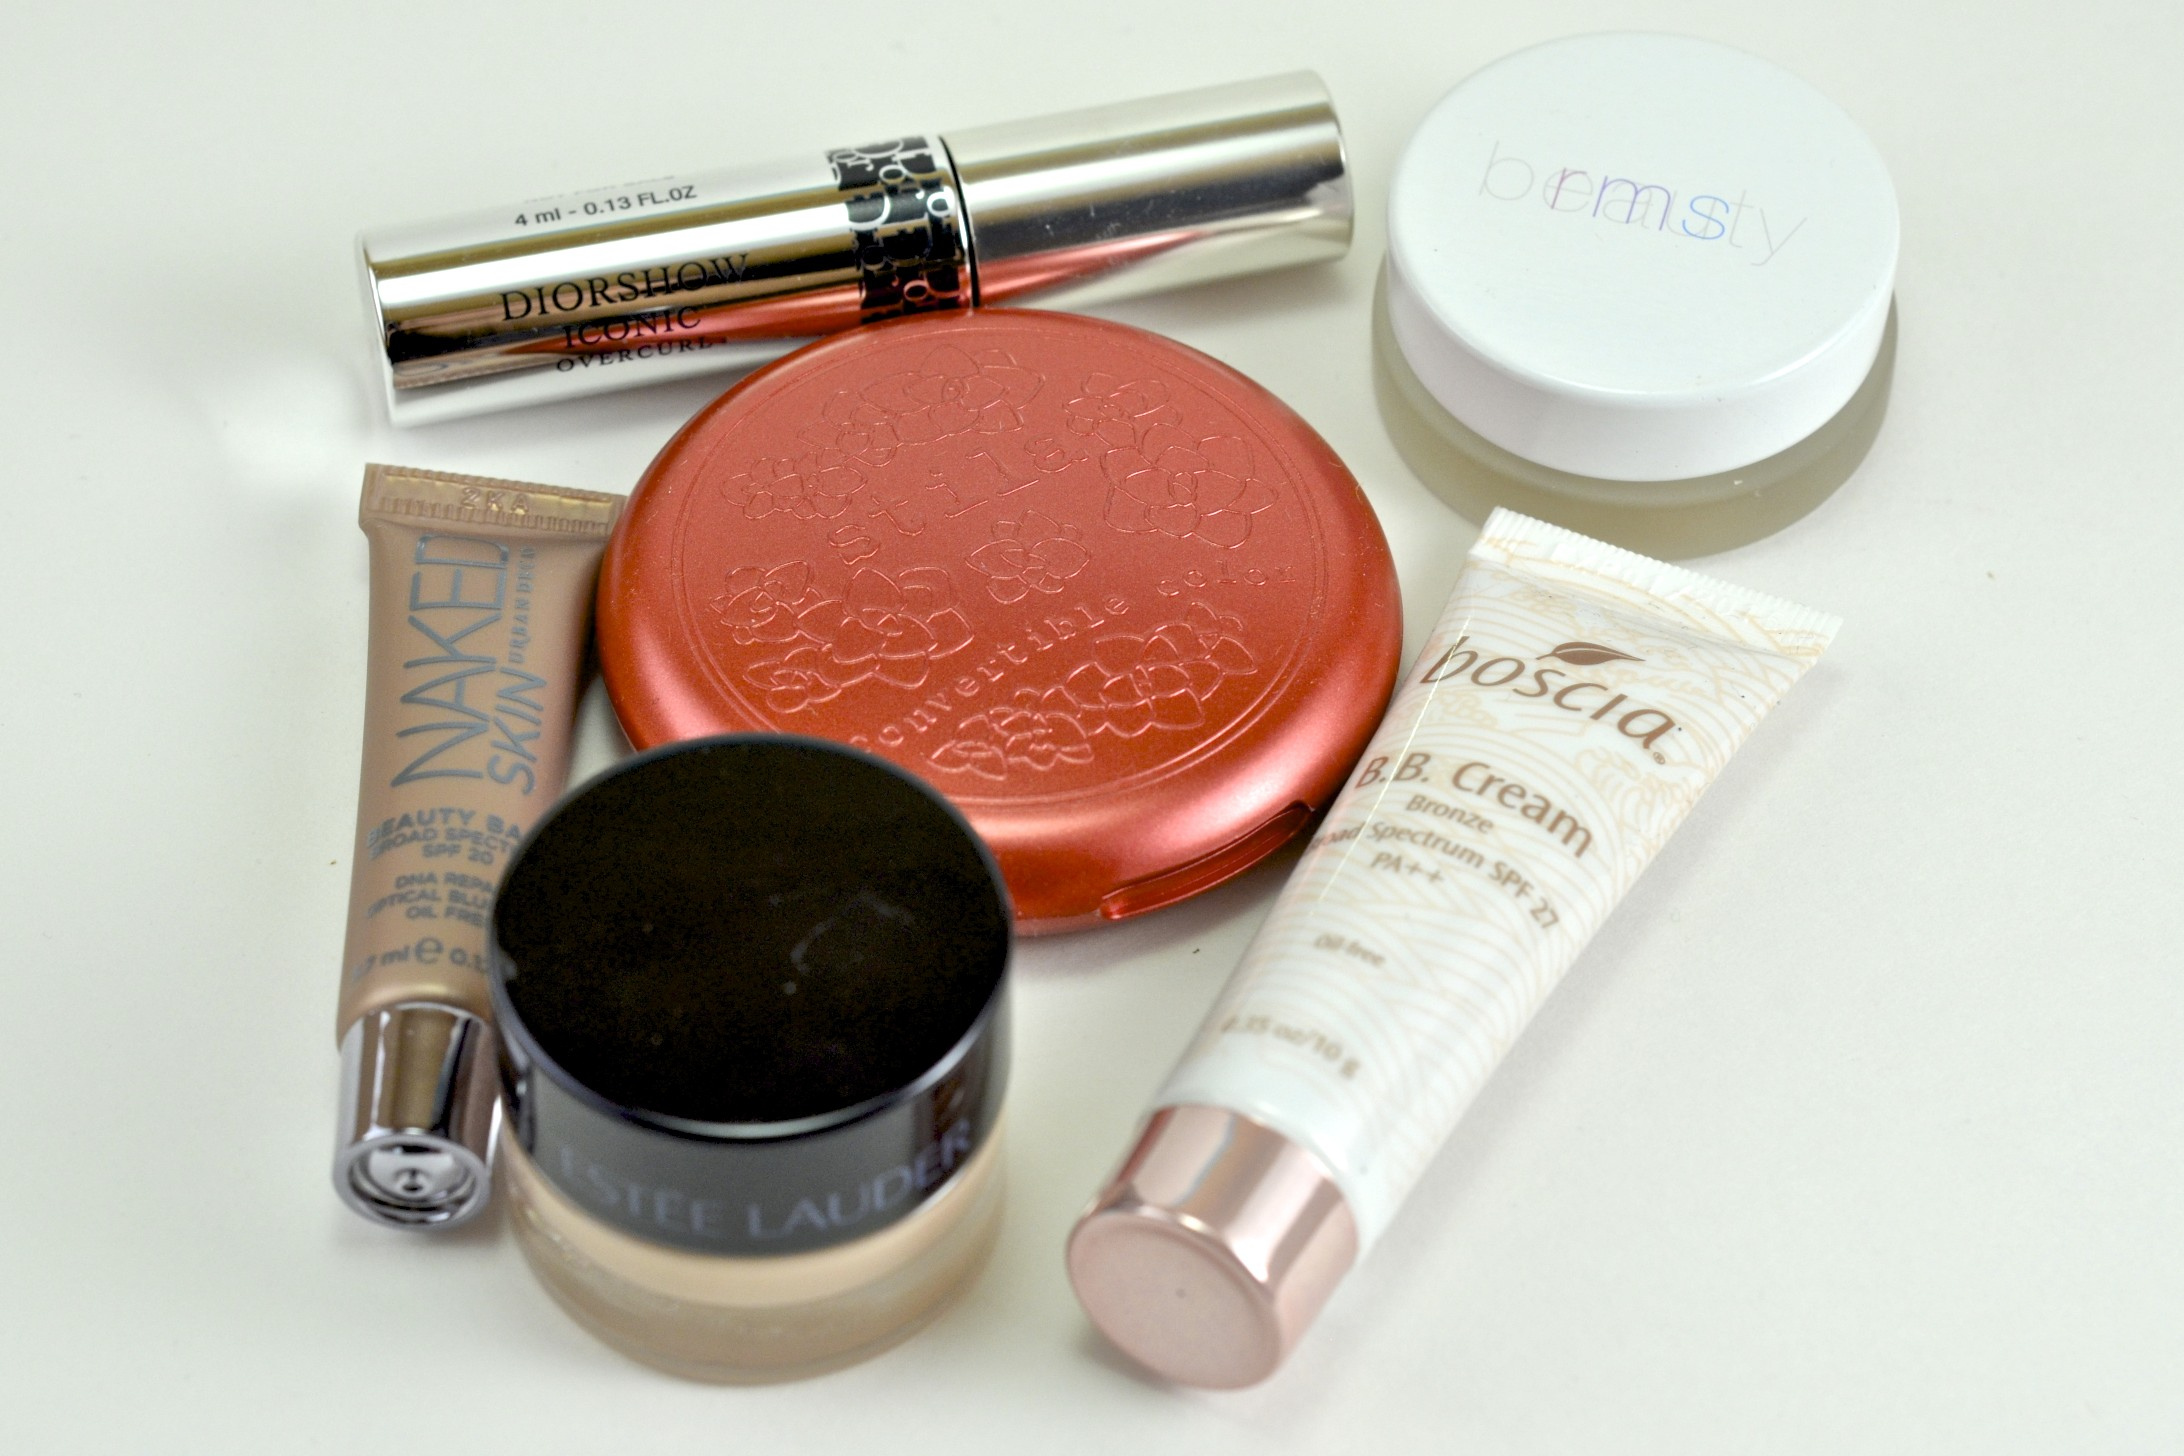 Diorshow Iconic Overcurl Mascara, RMS Uncoverup, Urban Decay Naked BB Cream, Stila Convertible Color Poppy, Boscia Bronze BB Cream, Estee Lauder Halo Shadow Paint